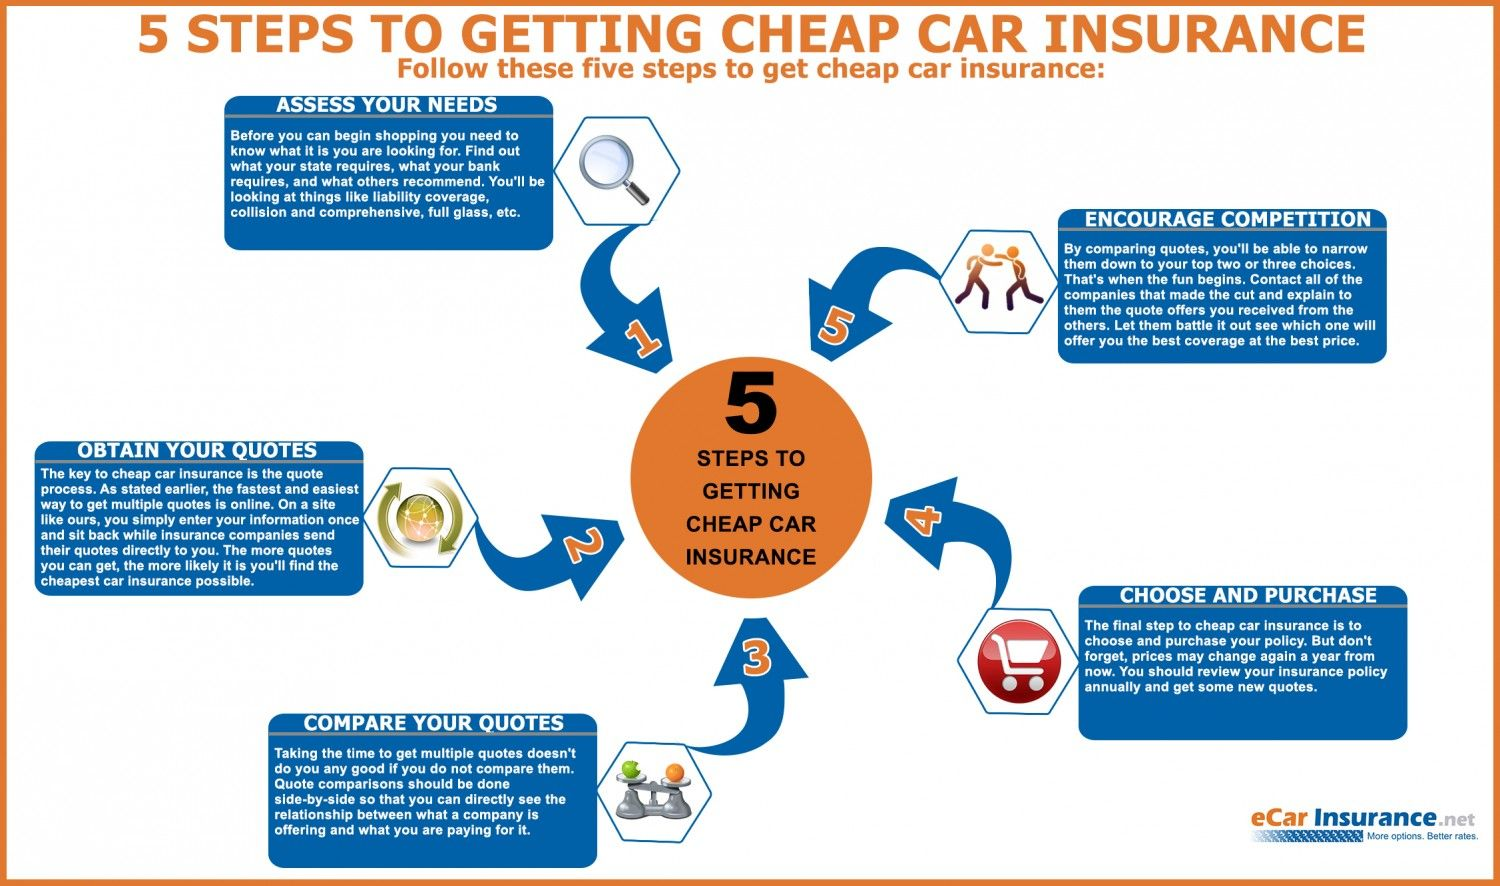 Auto Insurance Quote Comparison 5 Steps To Getting Cheap Car Insurance #infographic  Car And Motor